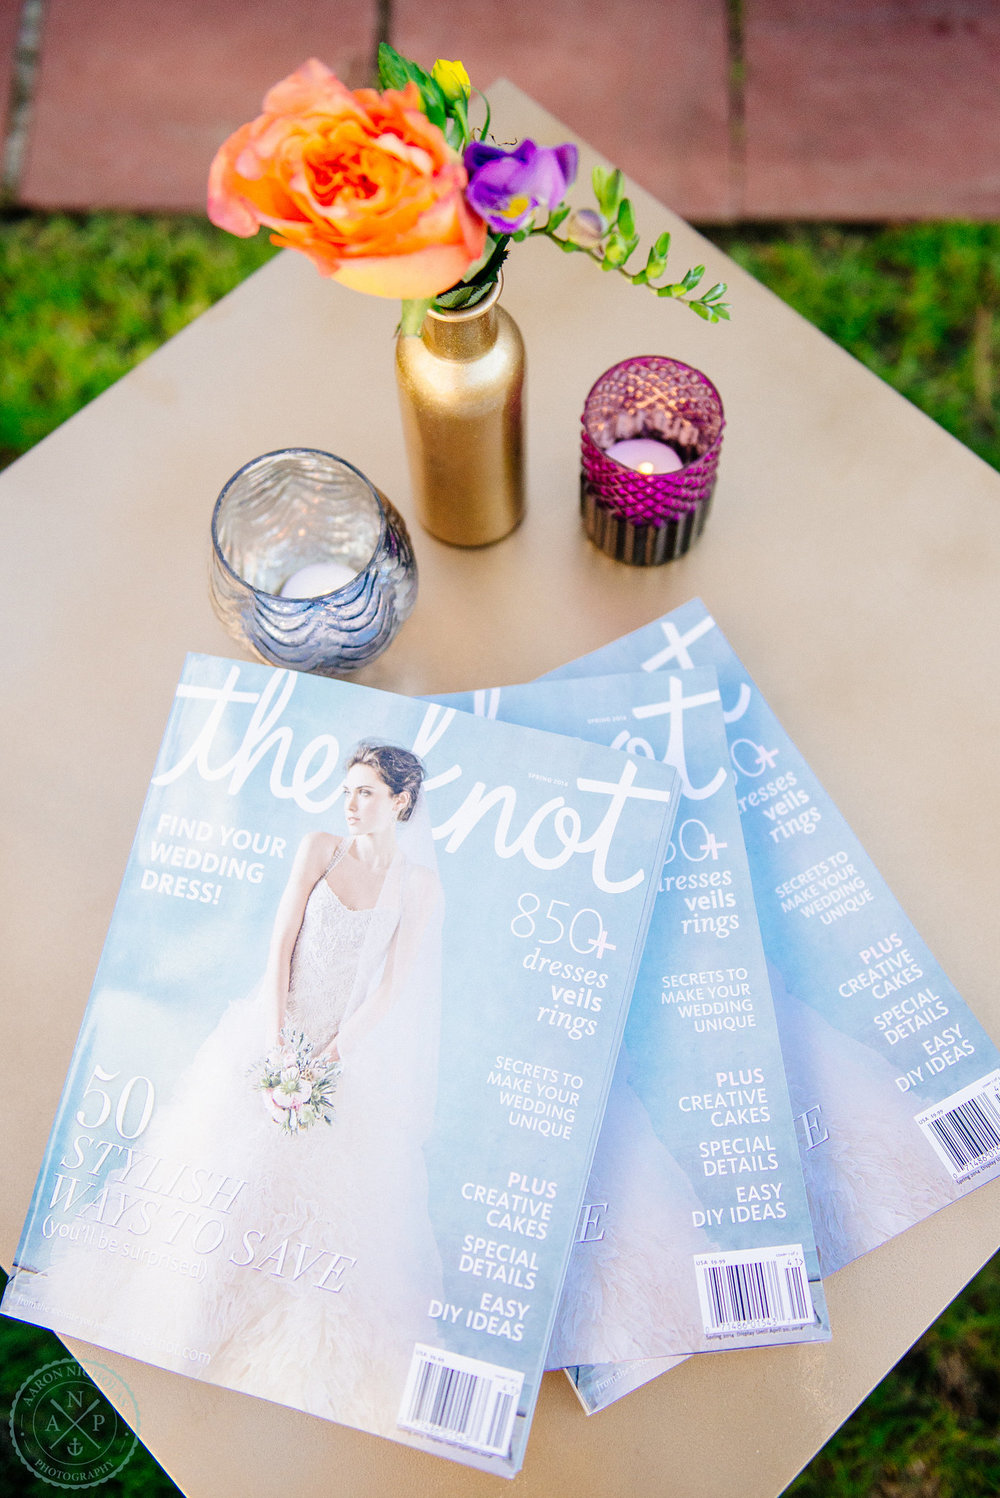 The-Knot-magazine-lounge-garden-wedding-gold-vase-plum-accent